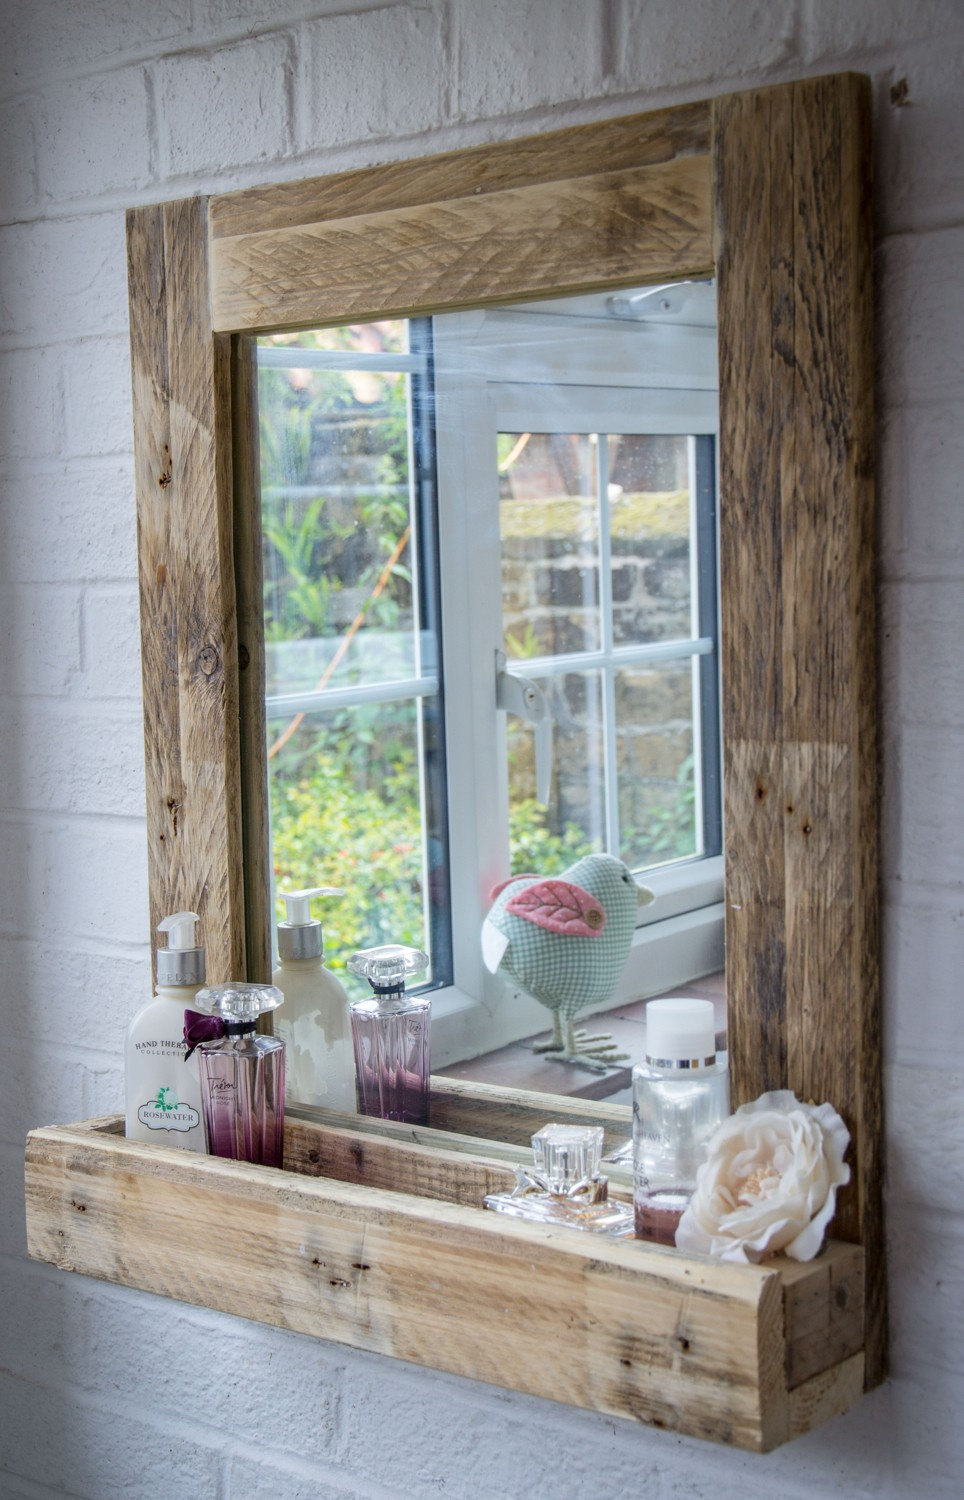 Best small space organization hacks 31 gorgeous rustic for Bathroom designs rustic